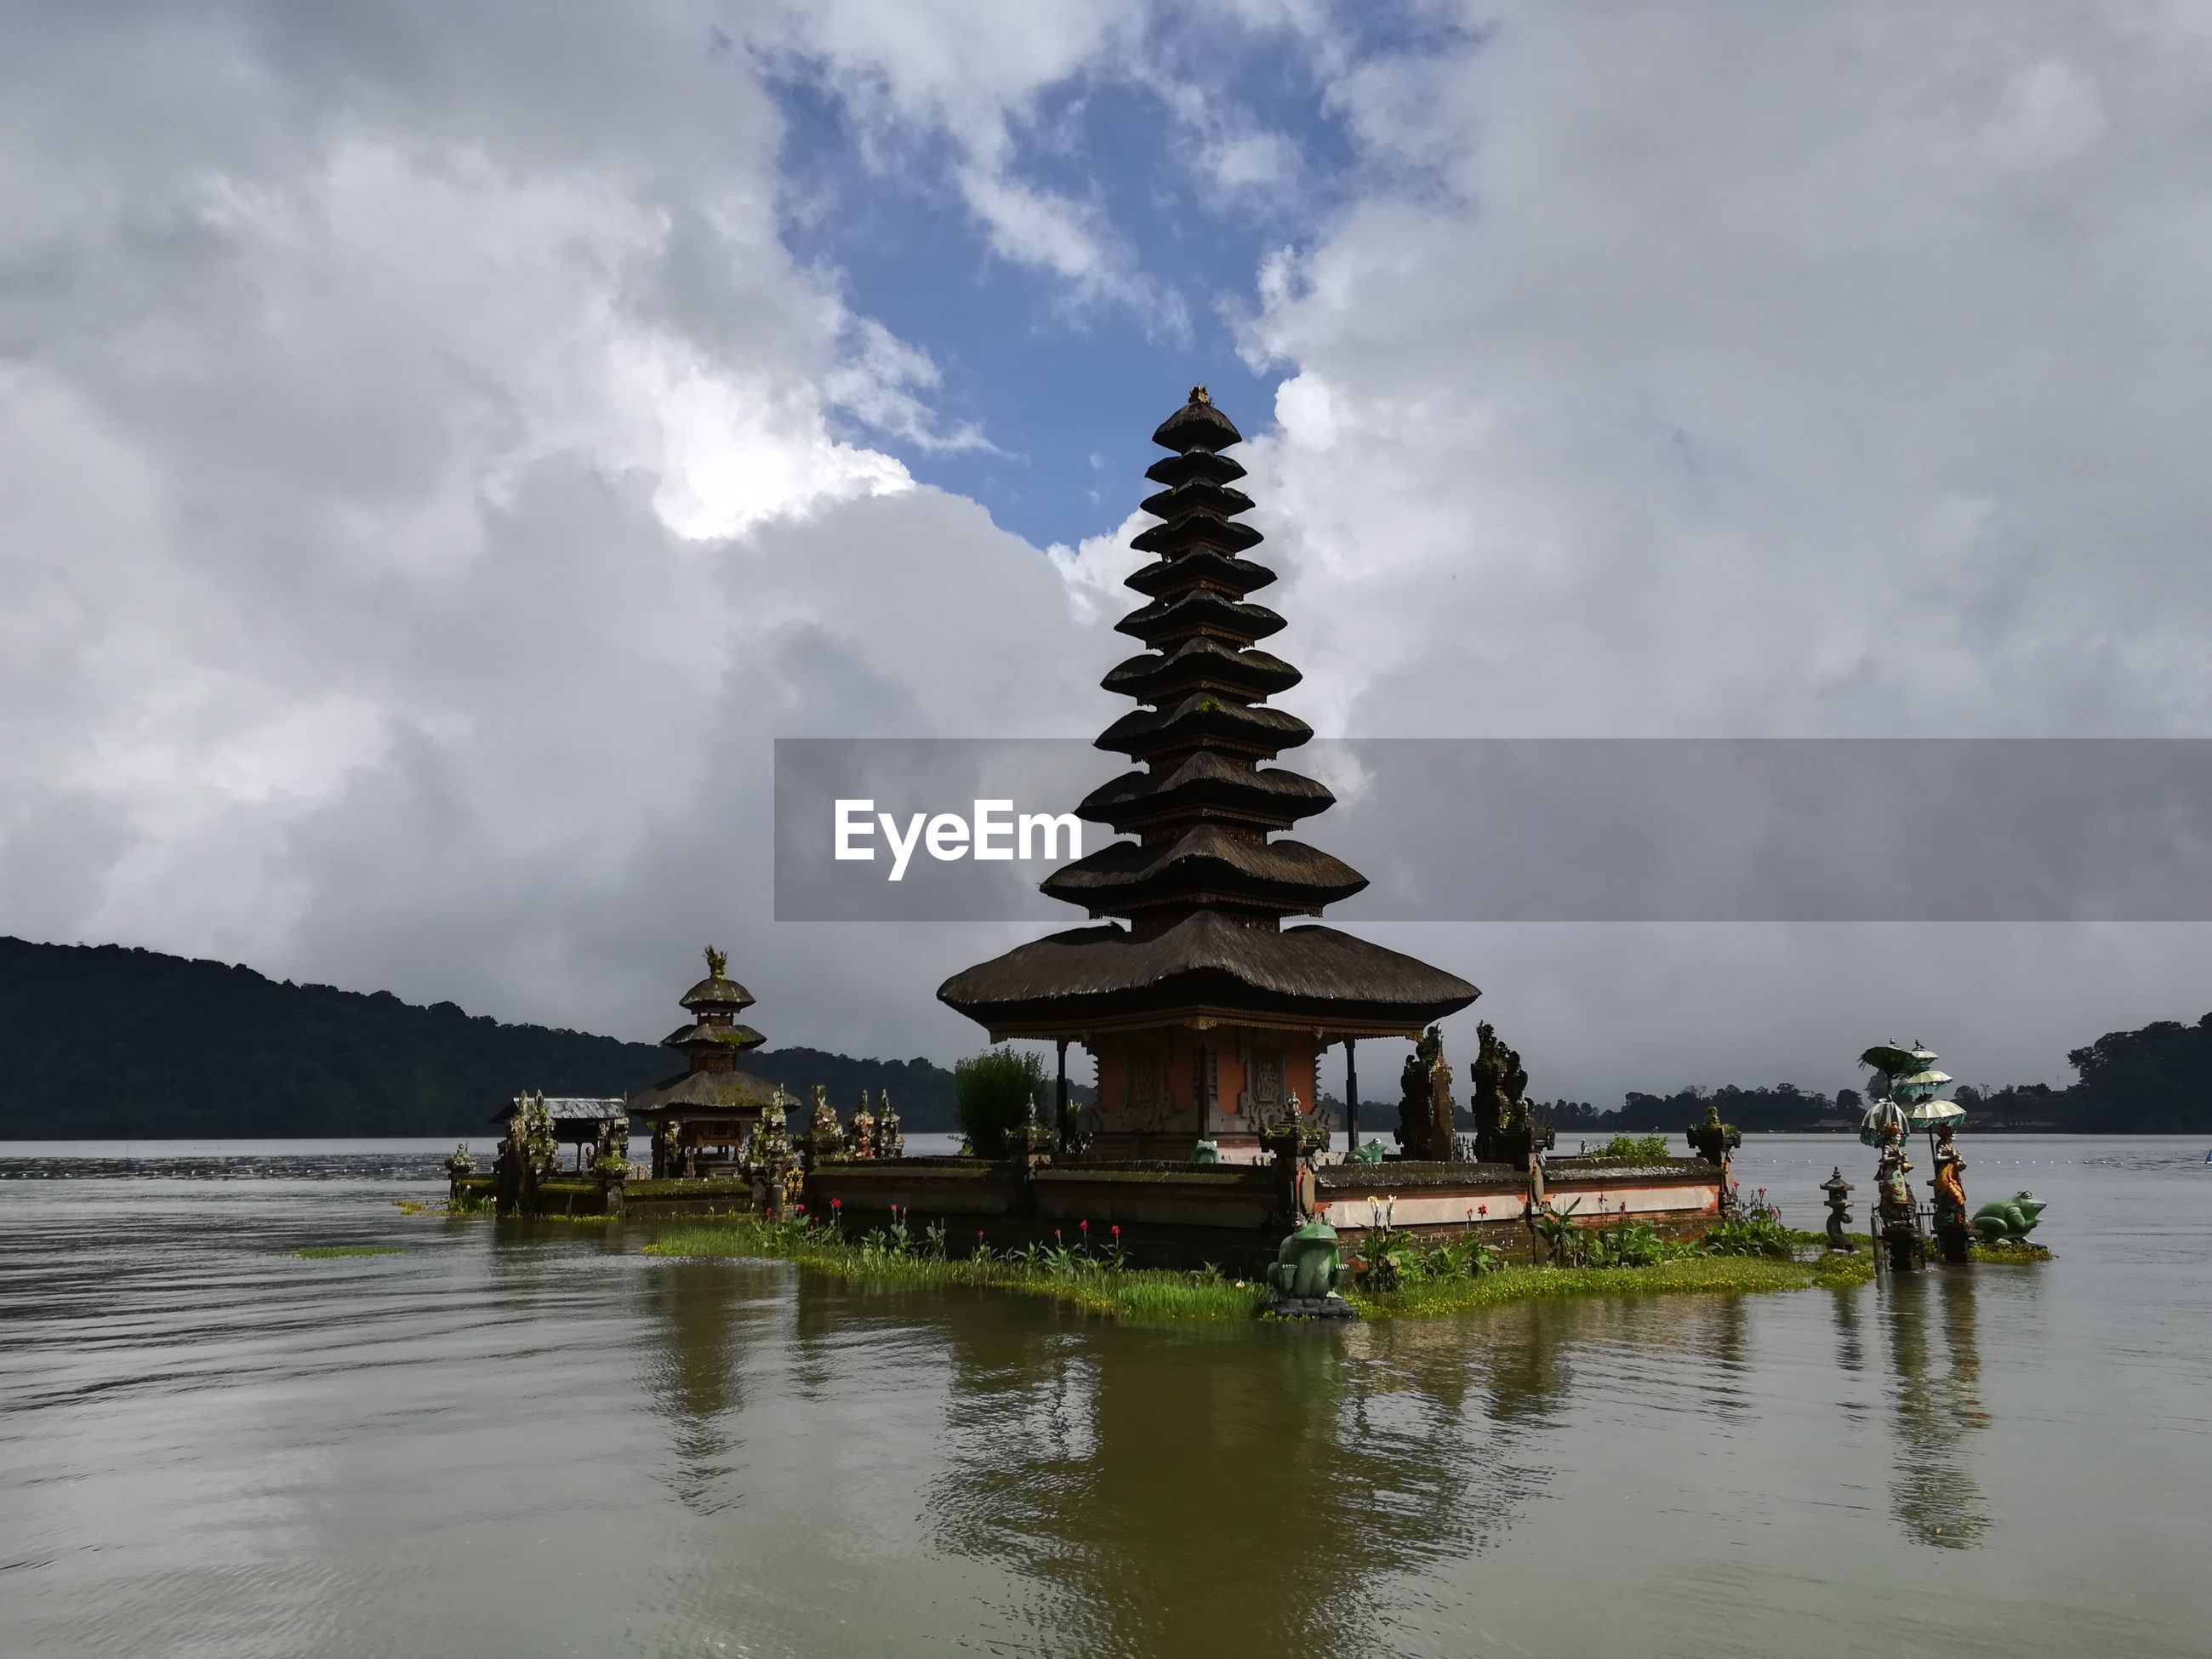 View of temple over lake against cloudy sky